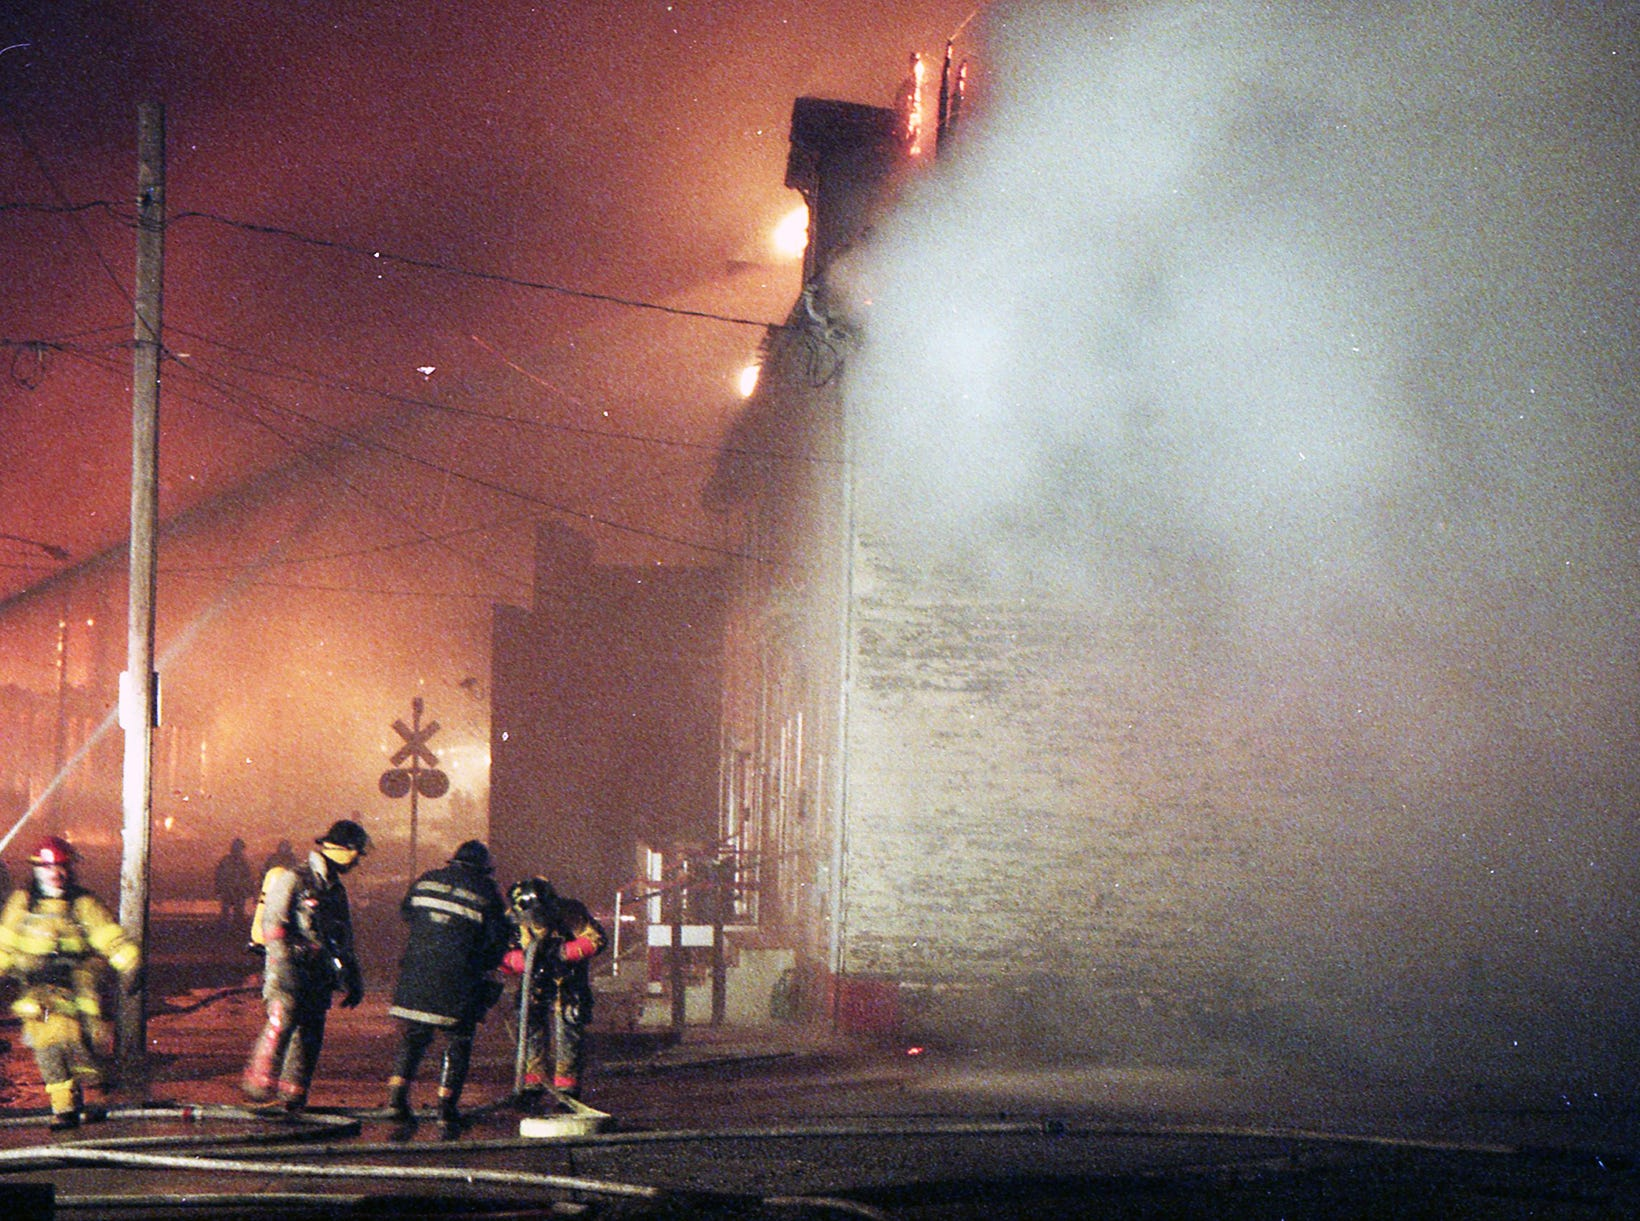 Firefighters attack row houses across the street from the fire that caught fire during the wave of sparks and heat. A fire began at the former Thonet Furniture plant at 491 East Princess Street in York on December 11, 1993. Eventually, the four alarm fire spread through the complex of buildings and several other properties.